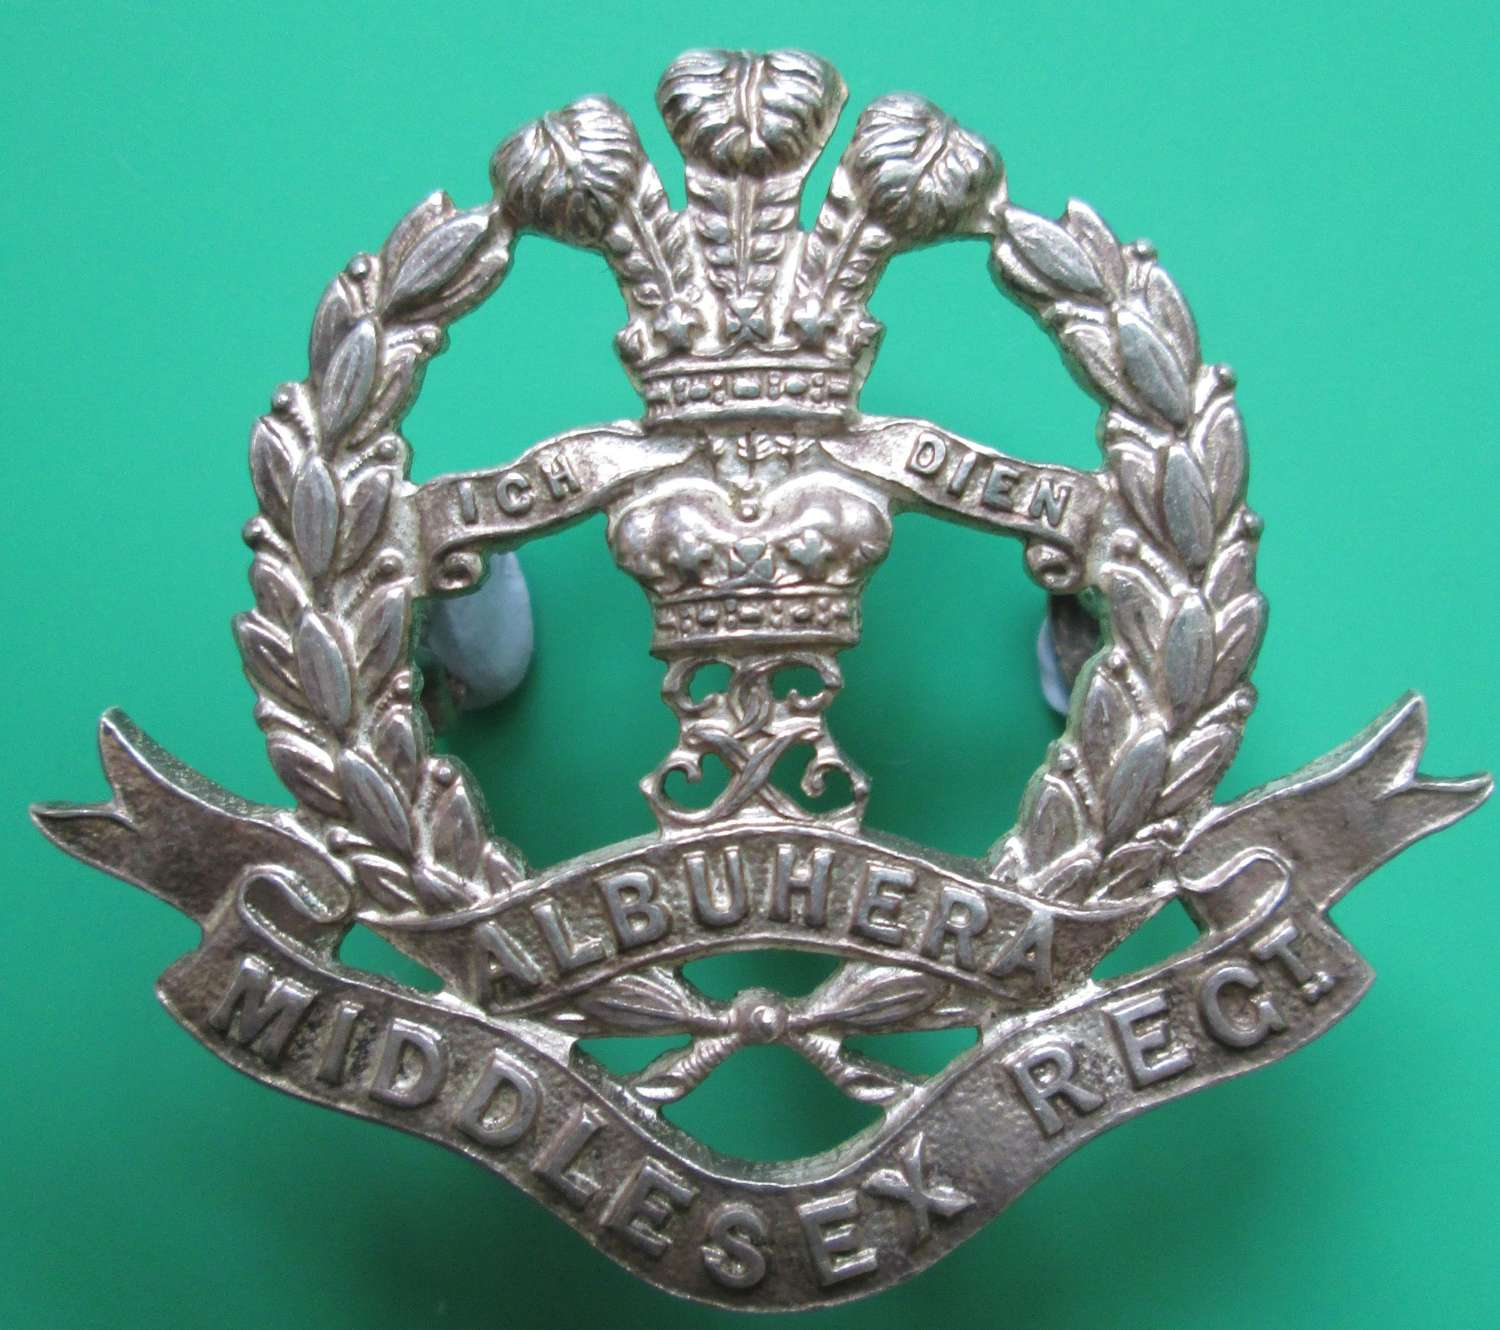 A SILVER PLATED OFFICERS MIDDLESEX REGIMENT BADGE